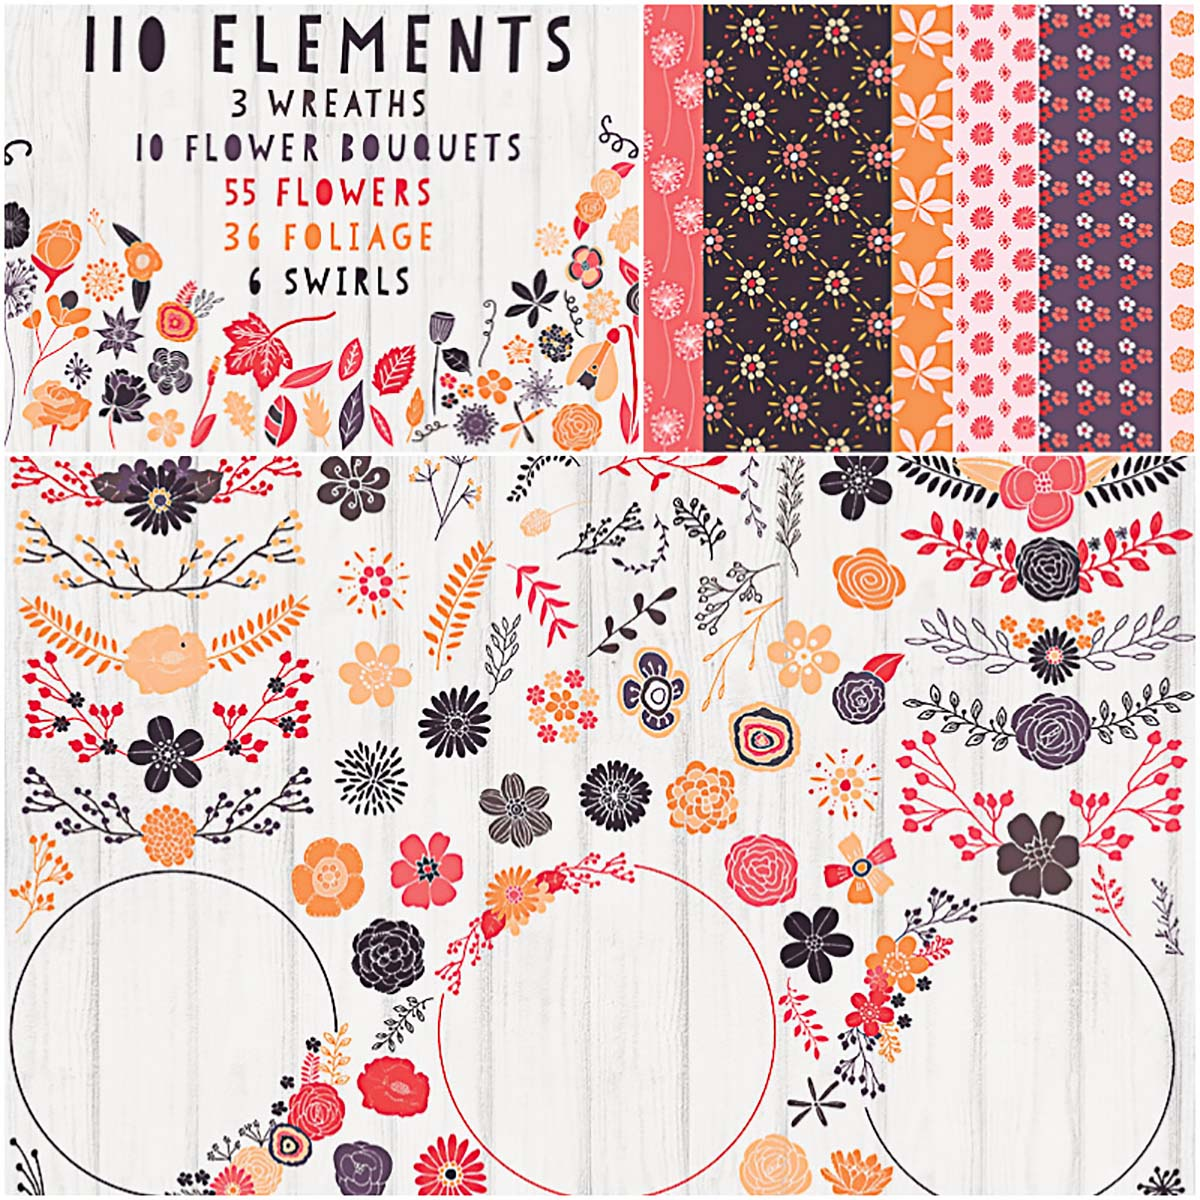 Floral clipart and patterns beautiful bundle set